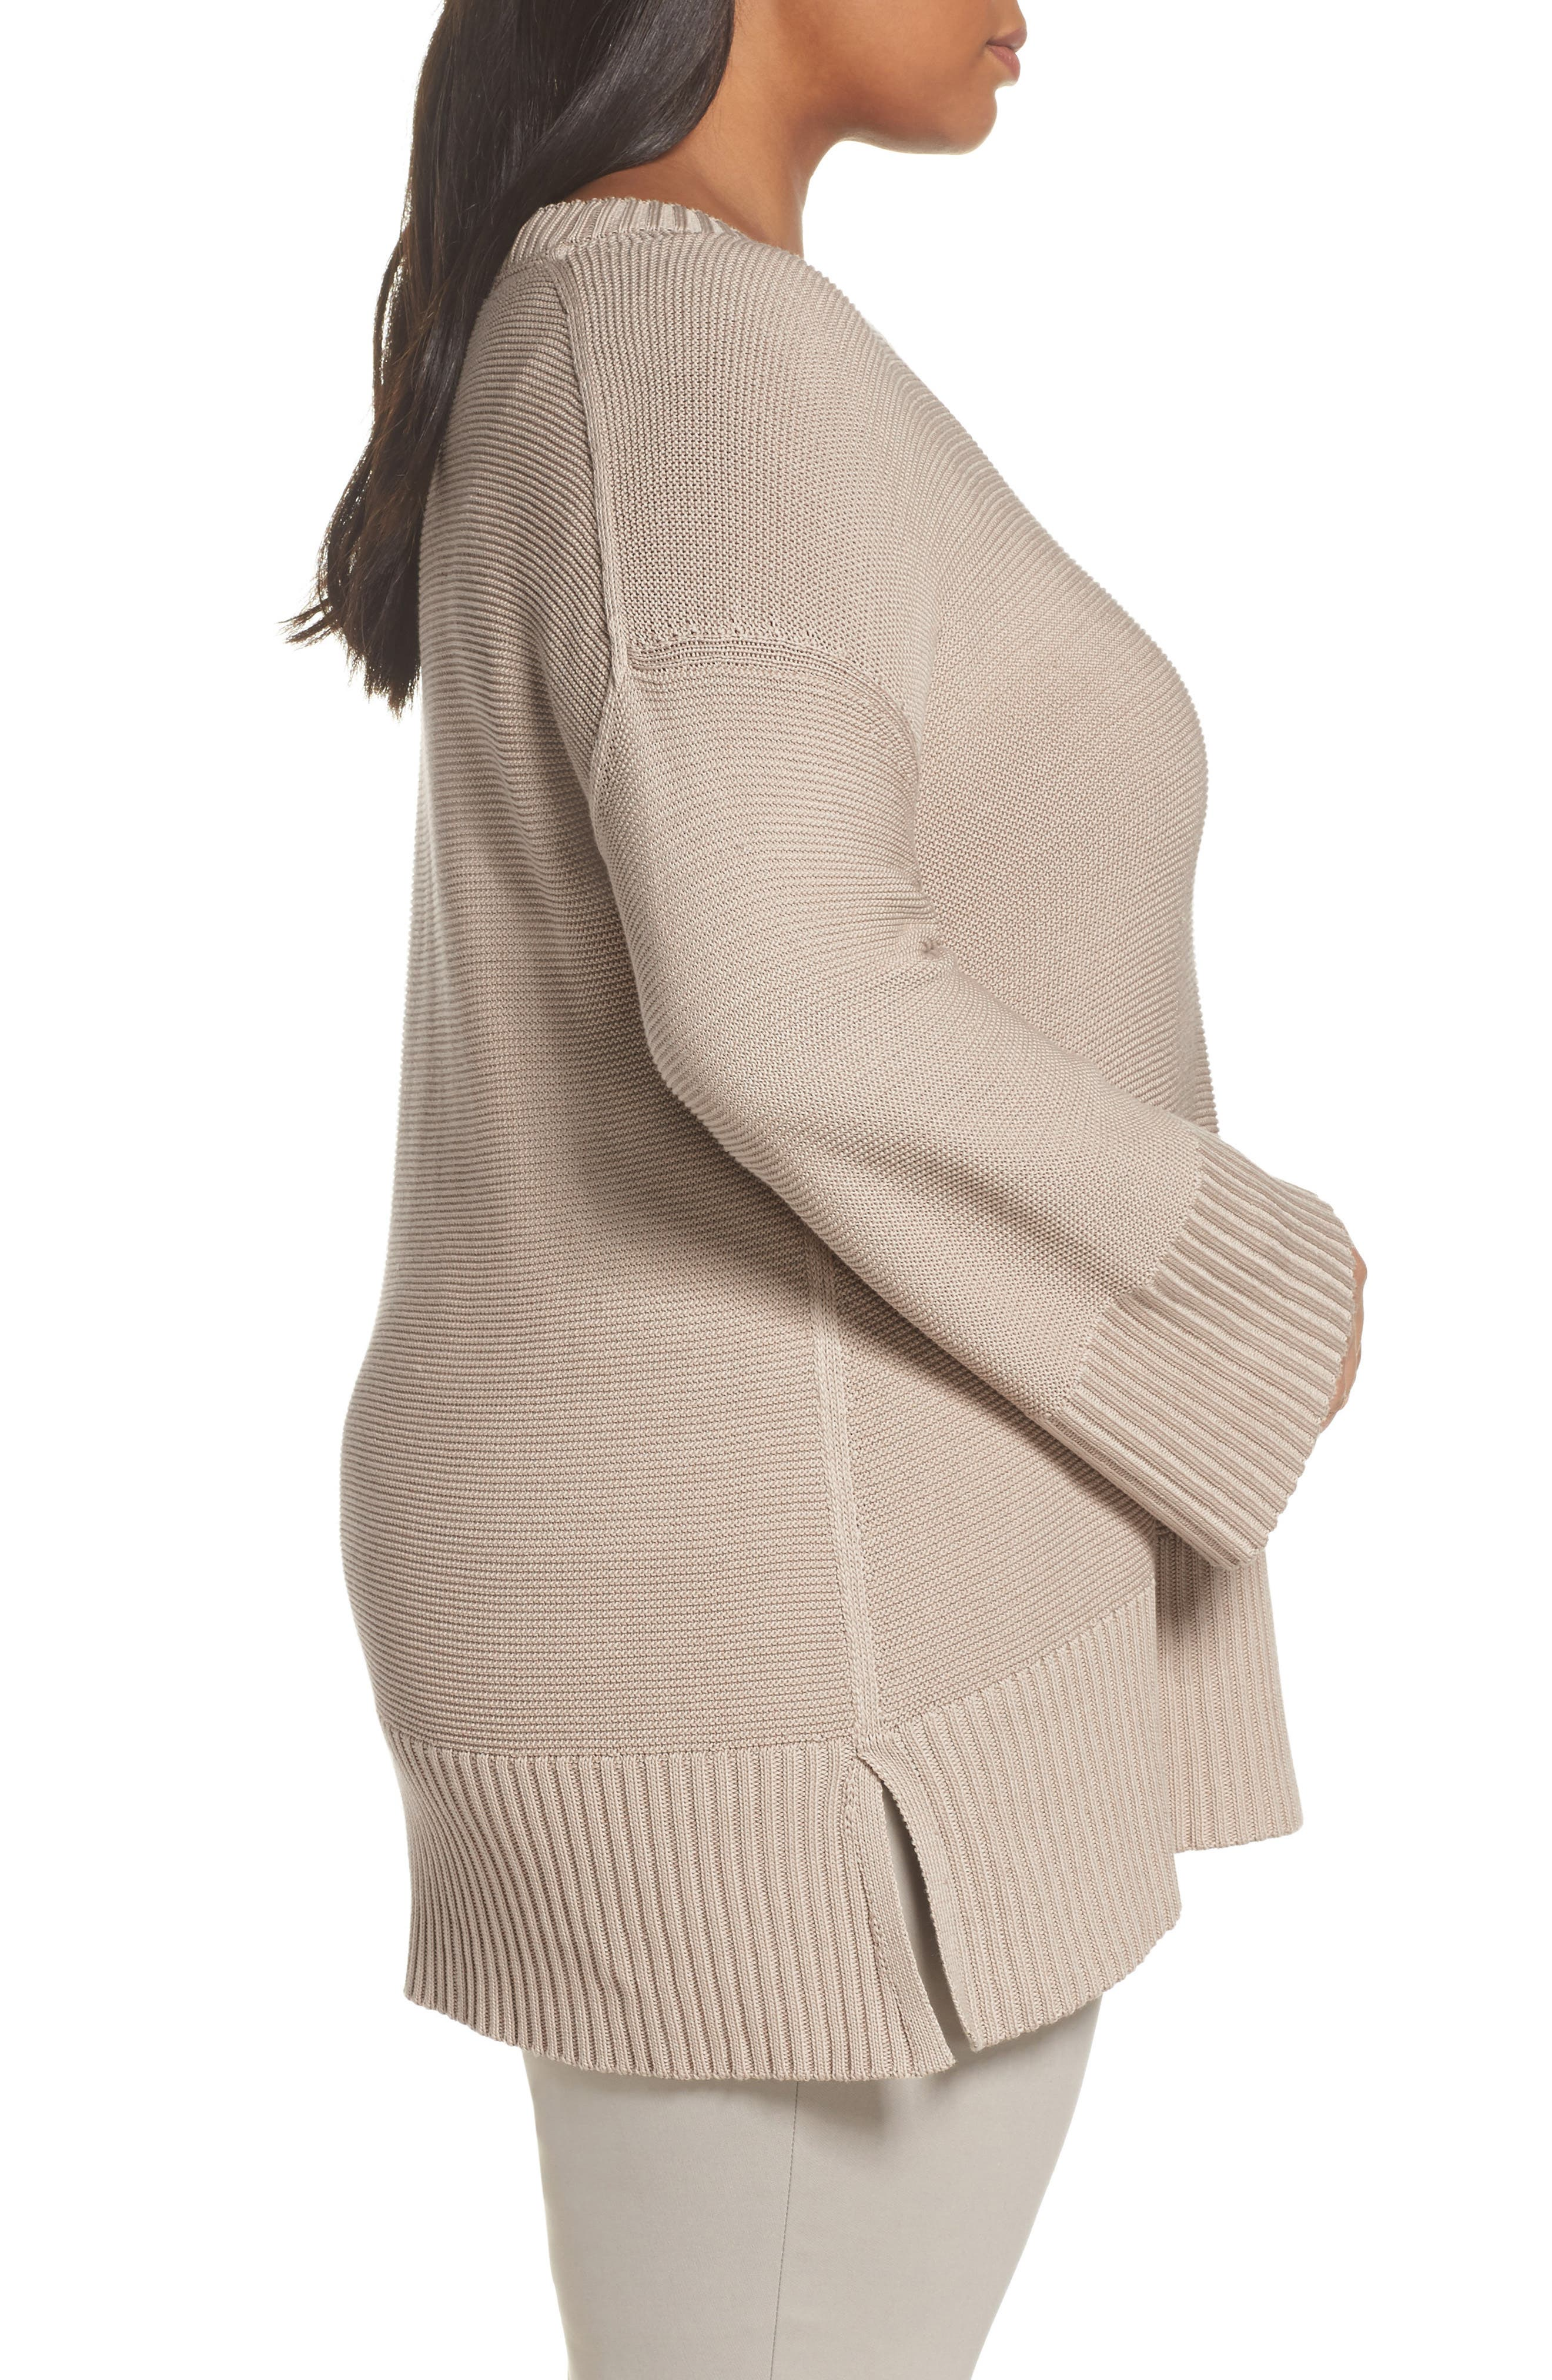 Lafayette 148 Silk and Cotton Sweater,                             Alternate thumbnail 3, color,                             Khaki